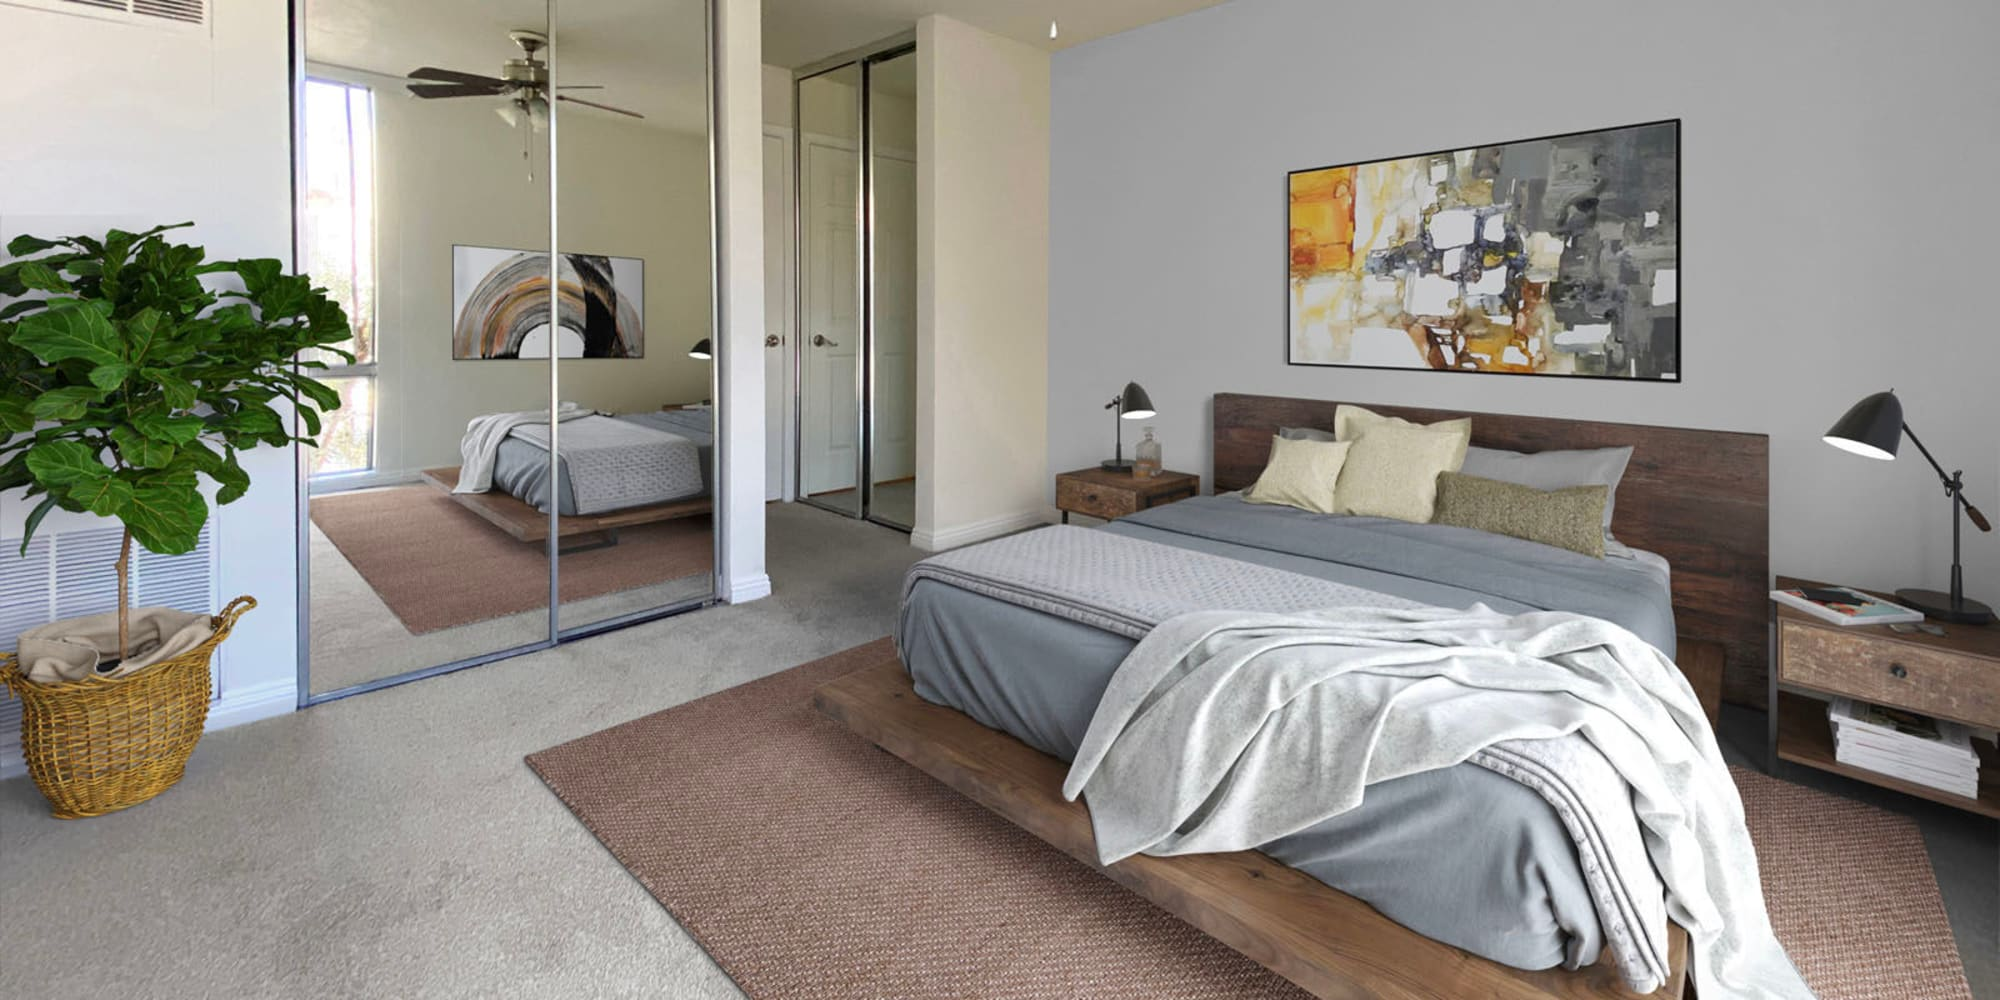 Model home's primary suite with mirrored closet doors and contemporary furnishings at Mediterranean Village in West Hollywood, California